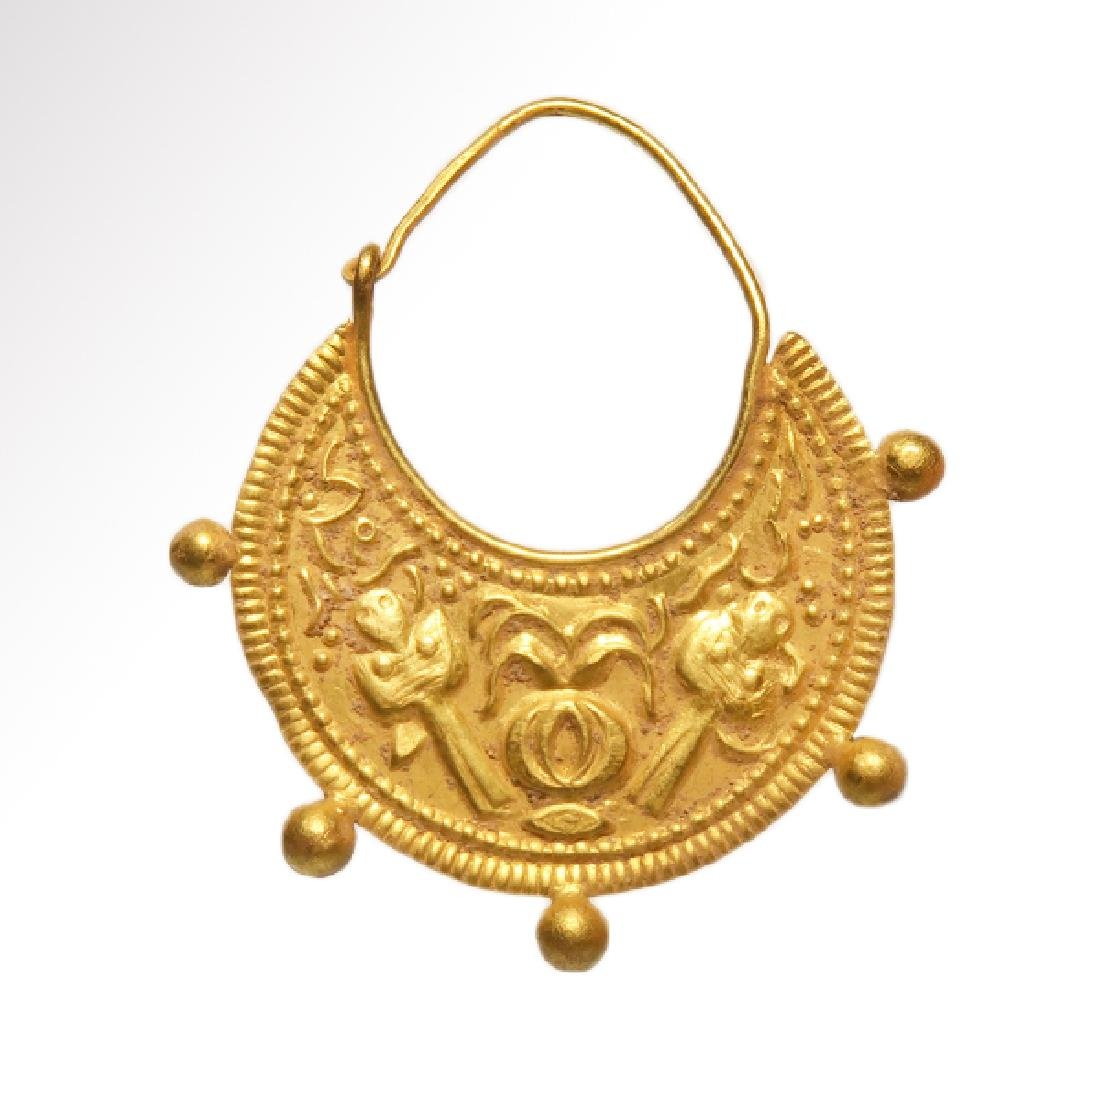 Roman / Early Byzantine Gold Earrings - 2